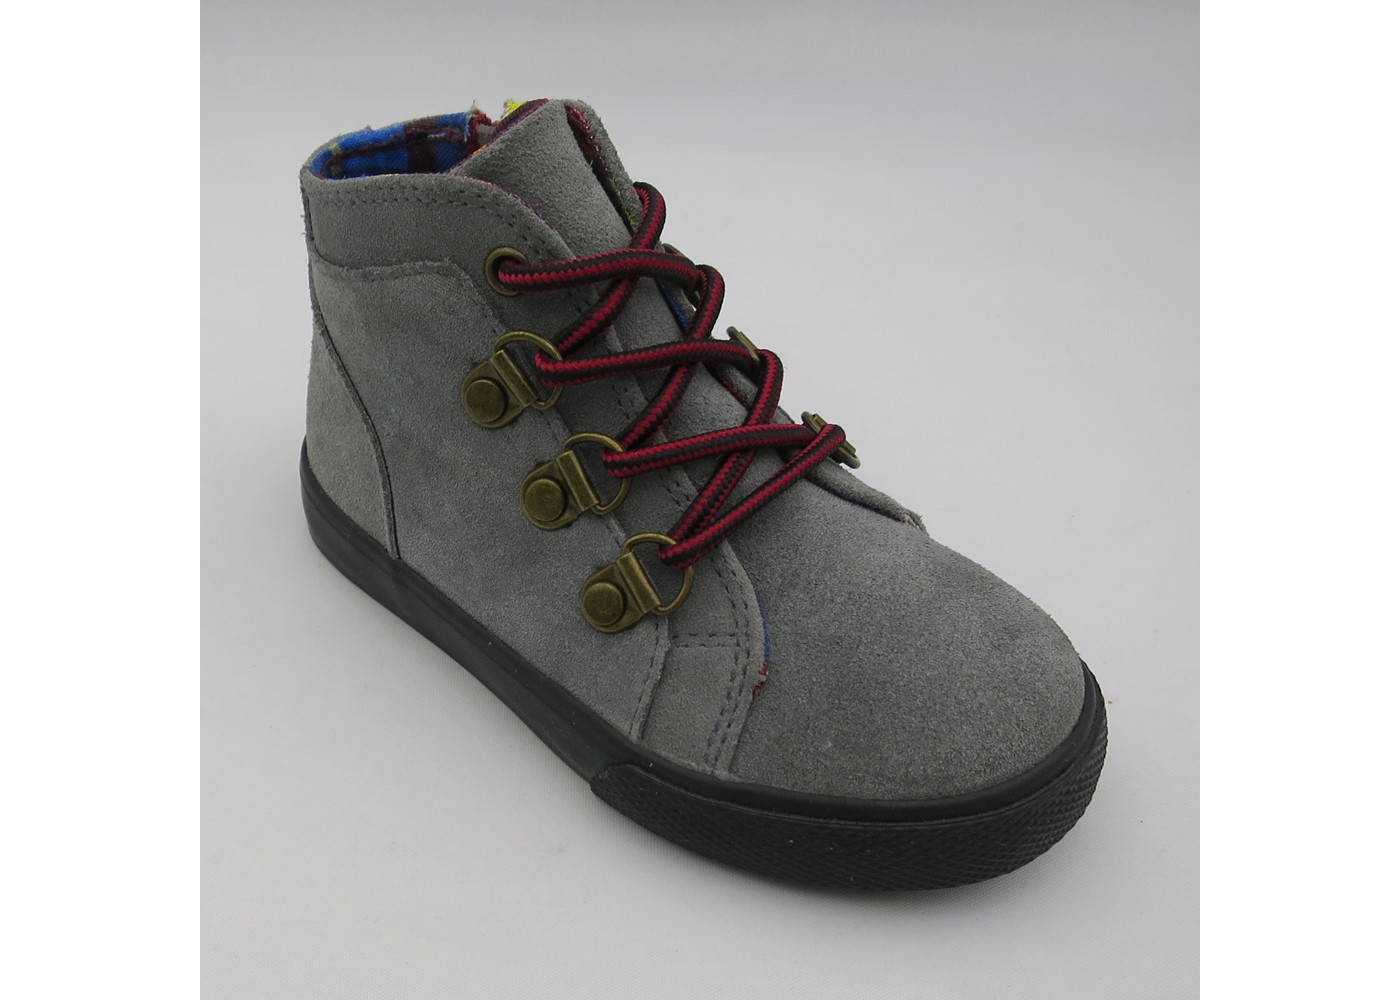 Toddler Boys' Hamilton Casual Fashion Boots - Cat & Jackâ?¢ Gray - image 1 of 3